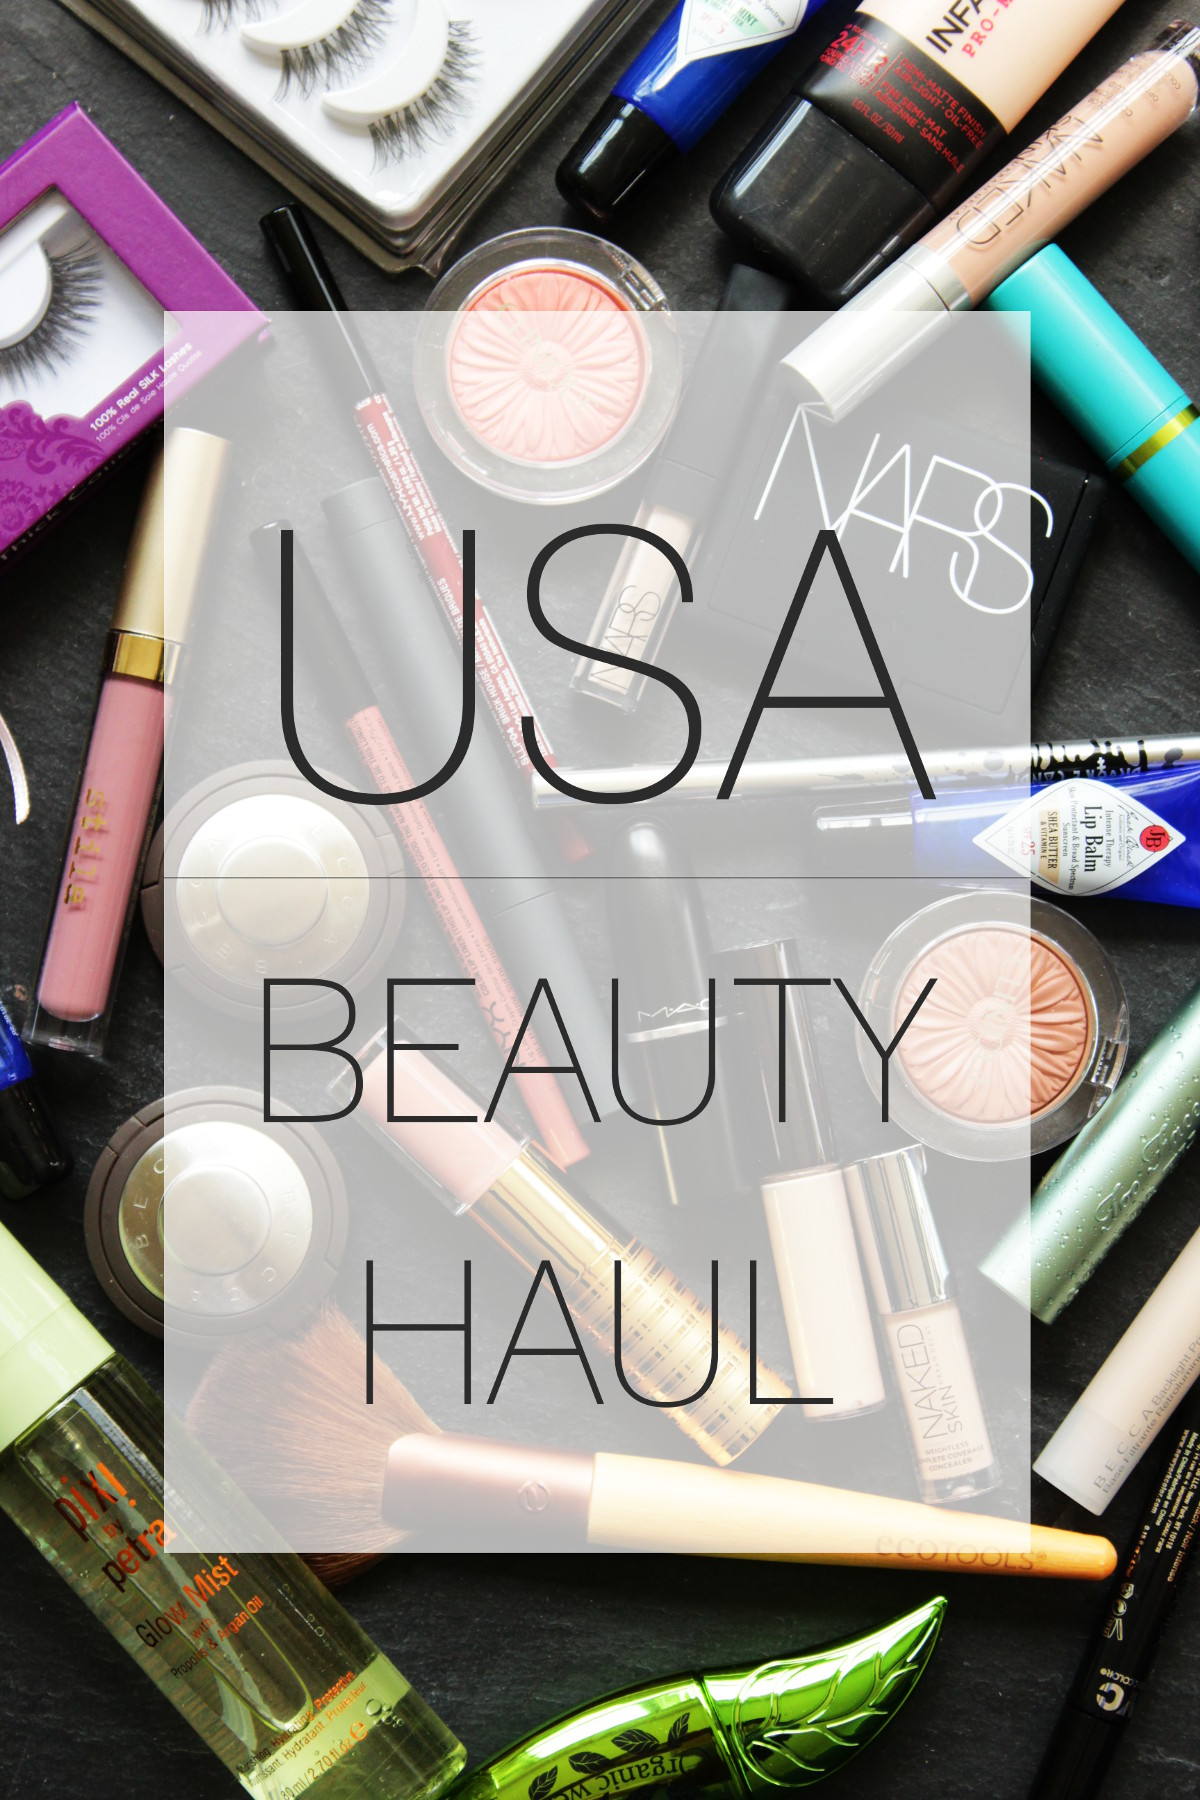 USA Beauty Haul